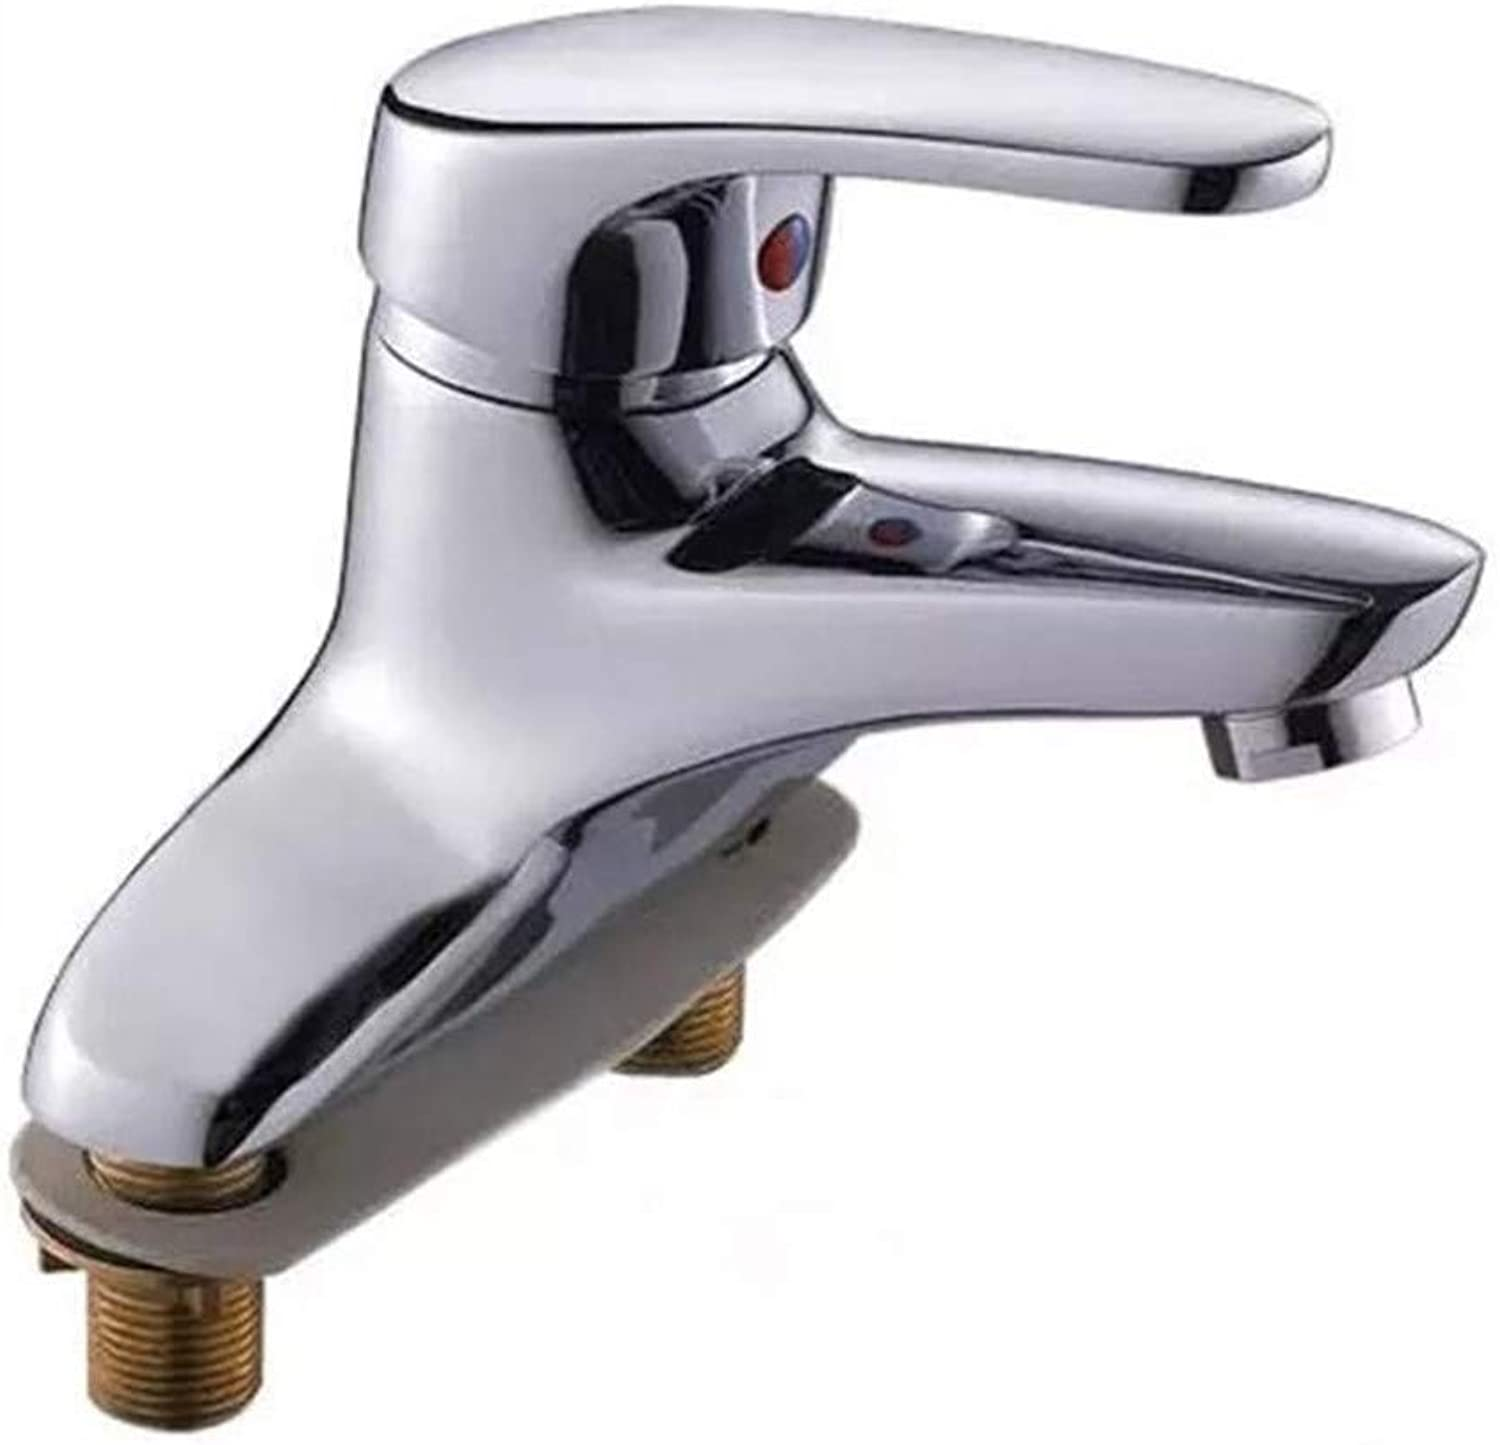 Water Tapdrinking Designer Archtwo Holes in The Basin of The Faucet Table